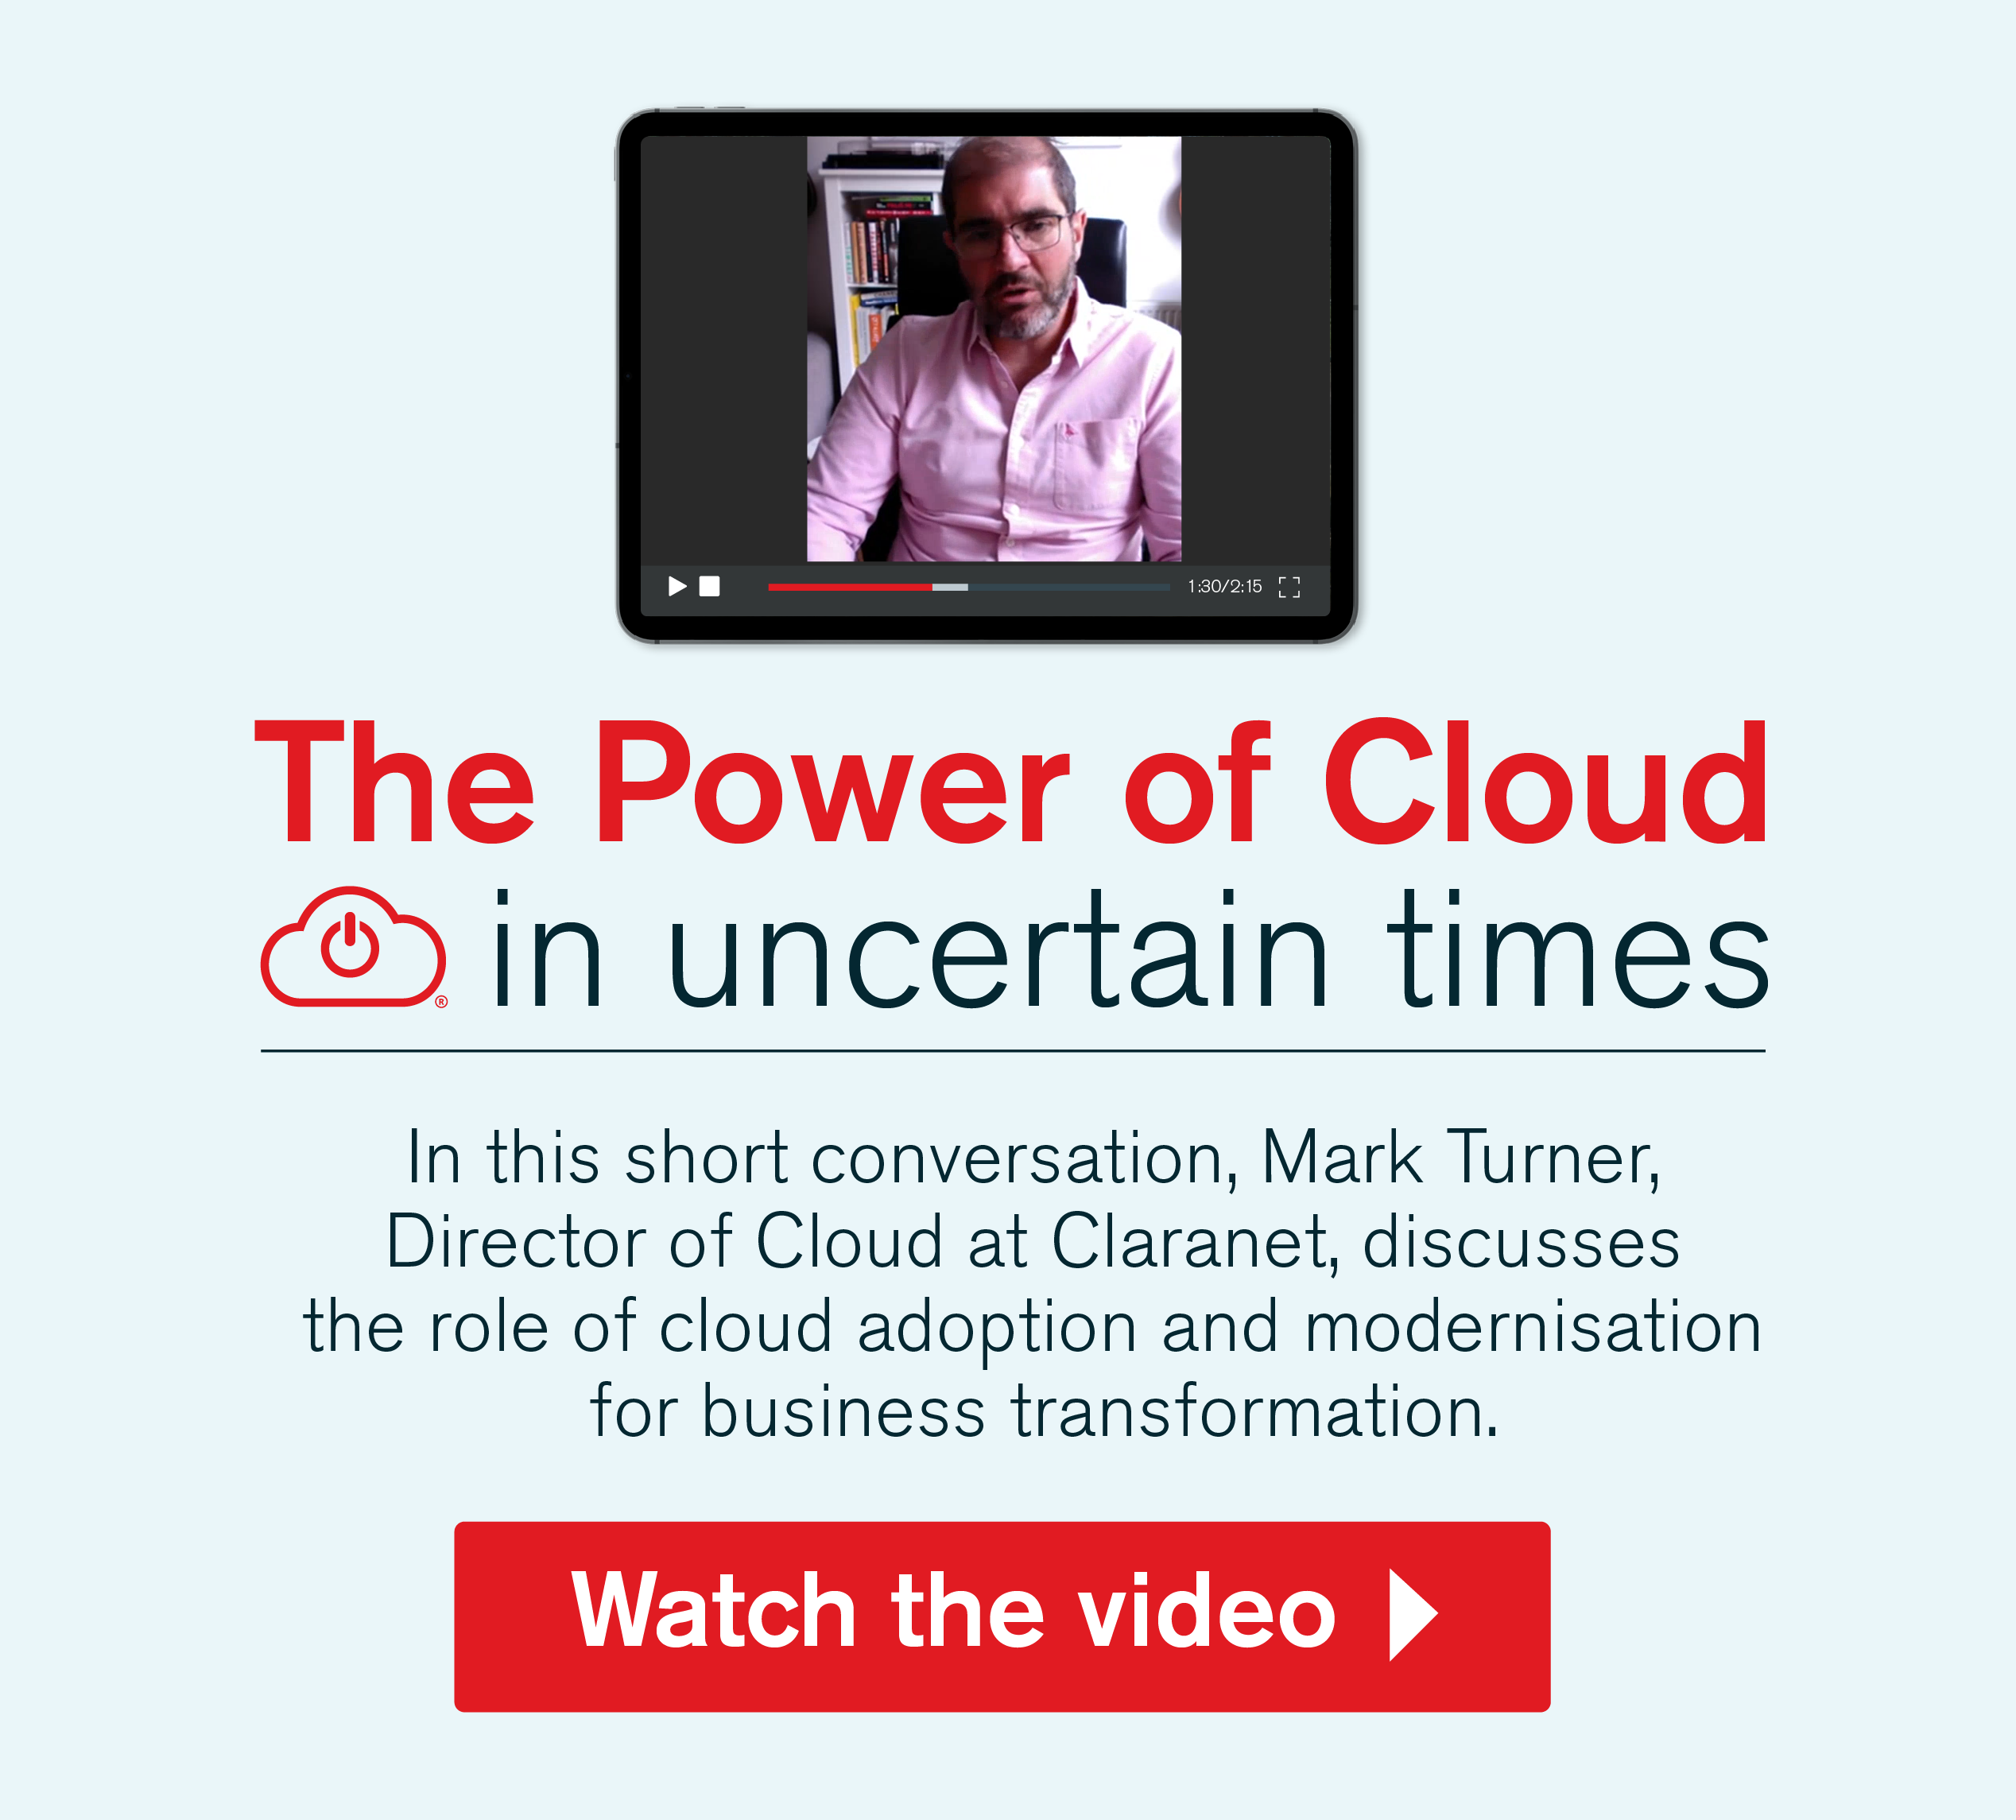 The Power of Cloud - Click here for the video